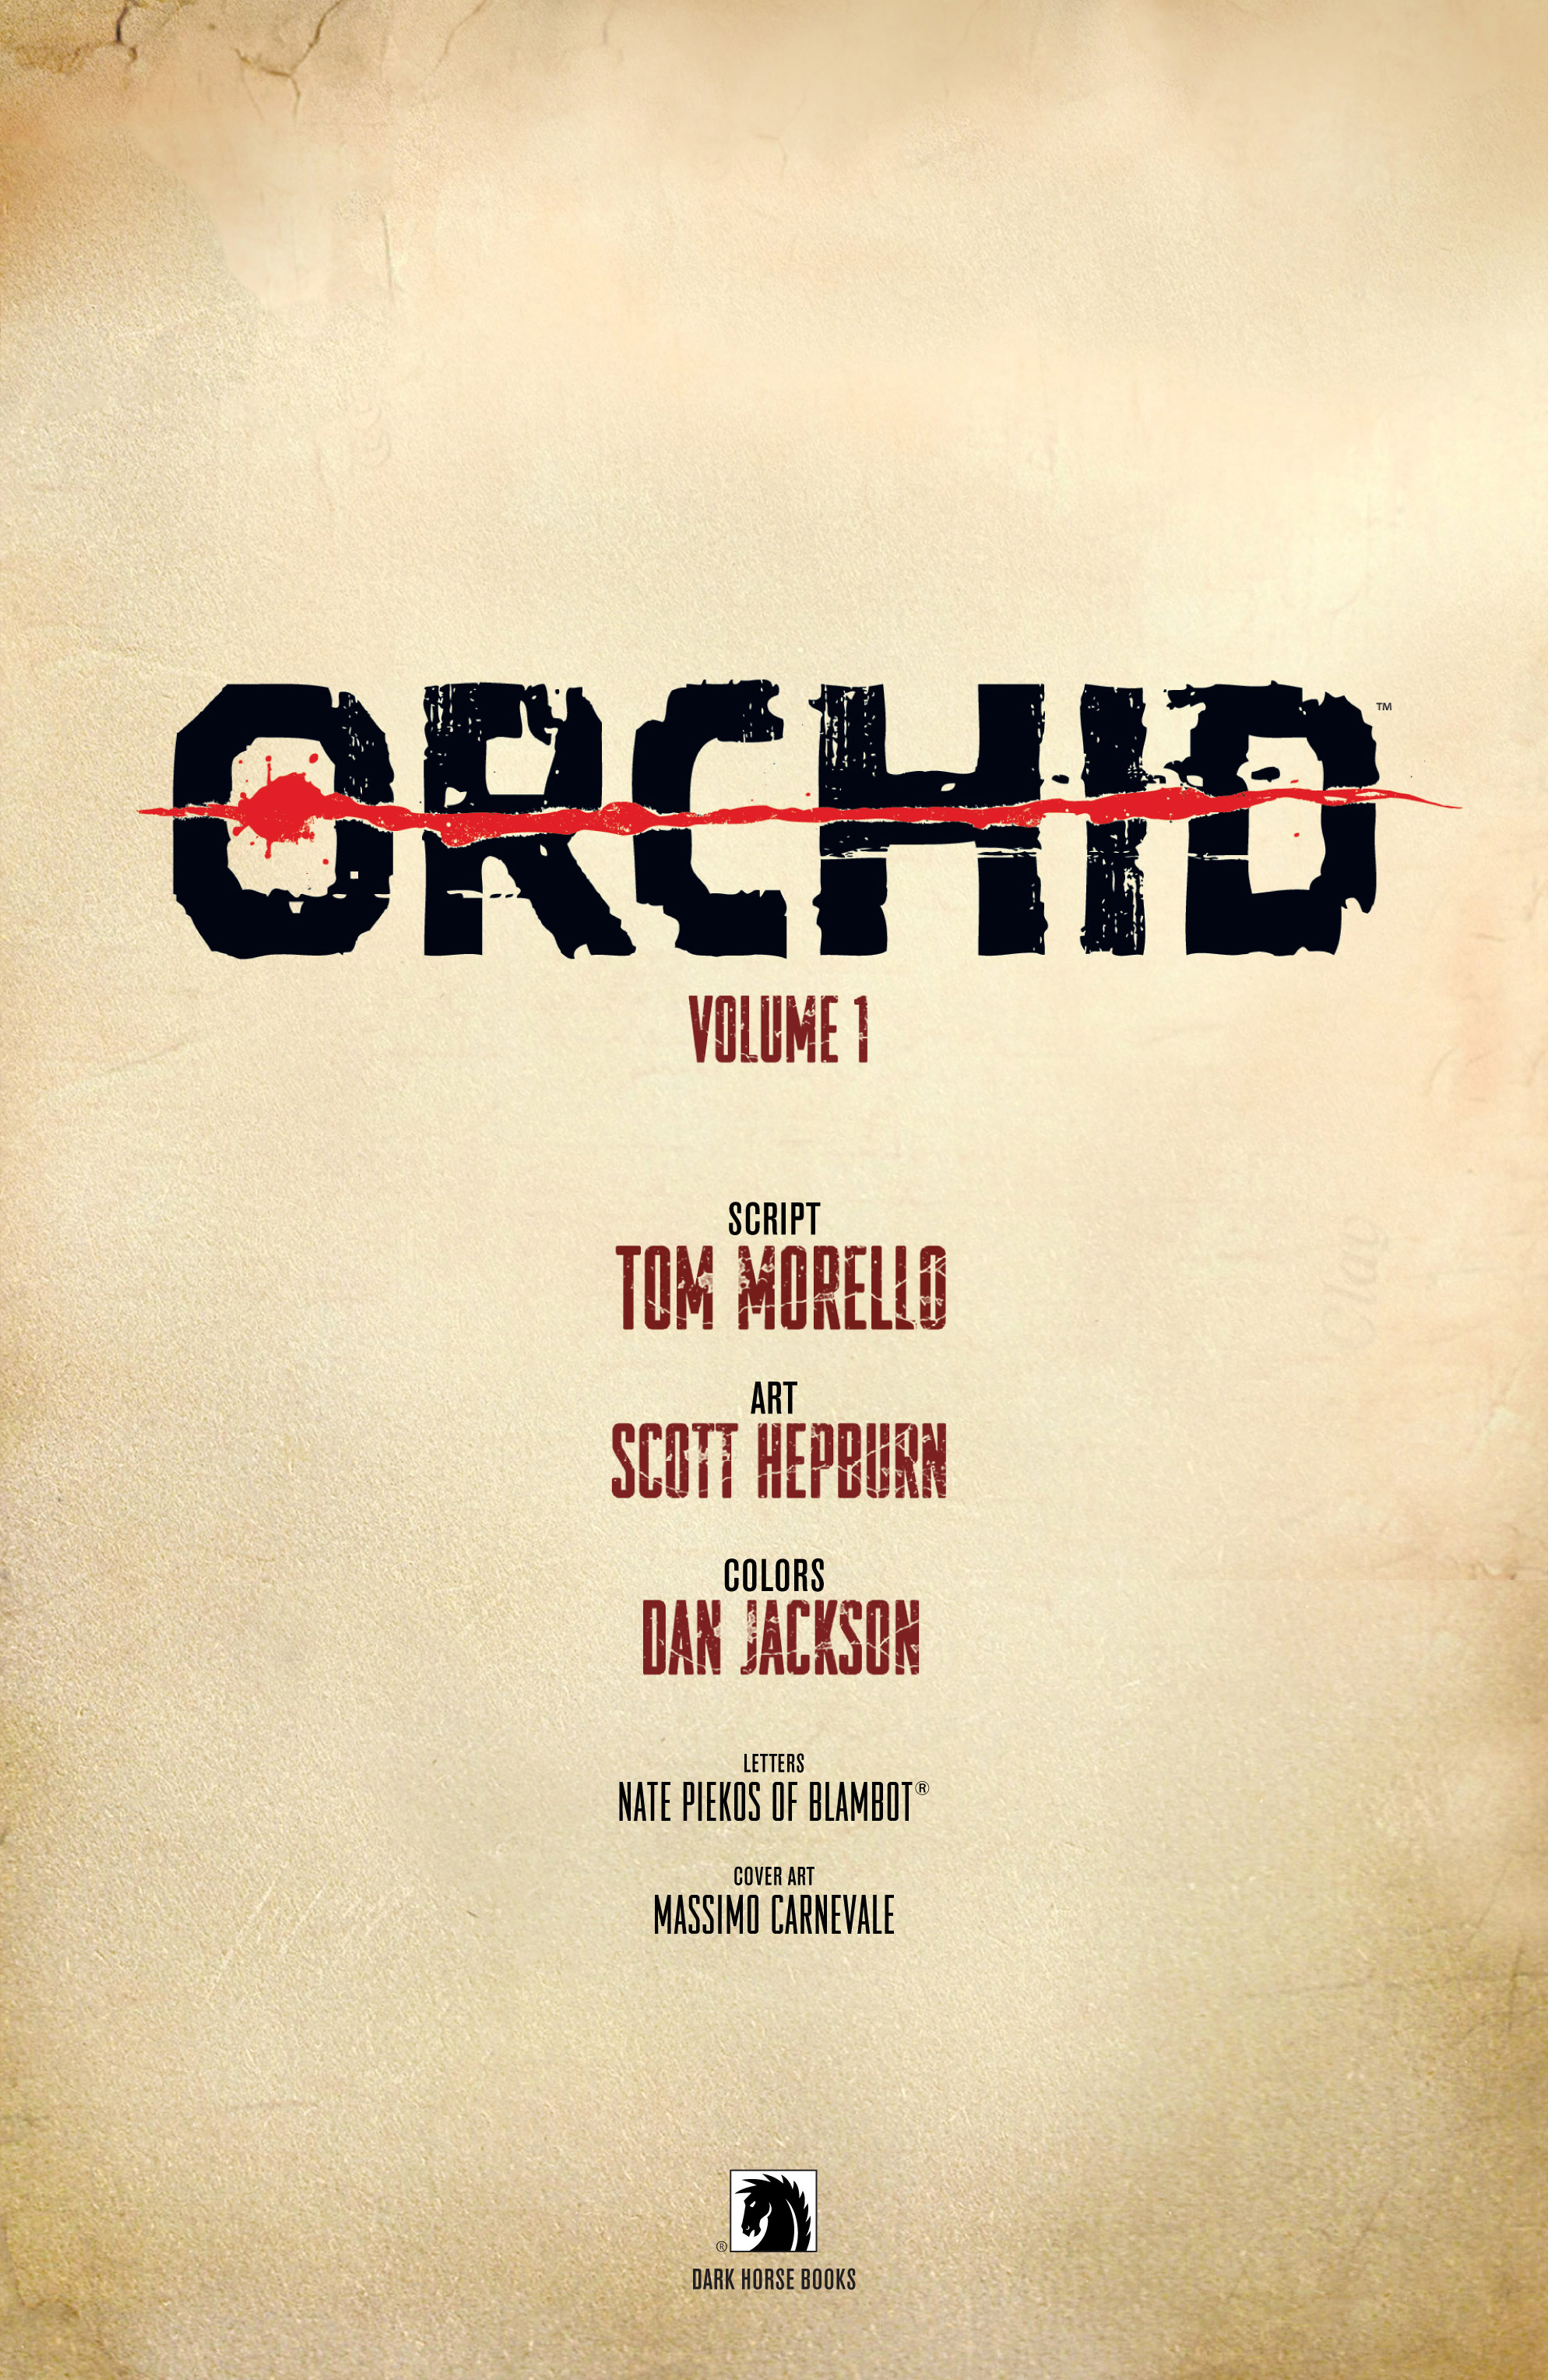 Read online Orchid comic -  Issue # TPB 1 - 4